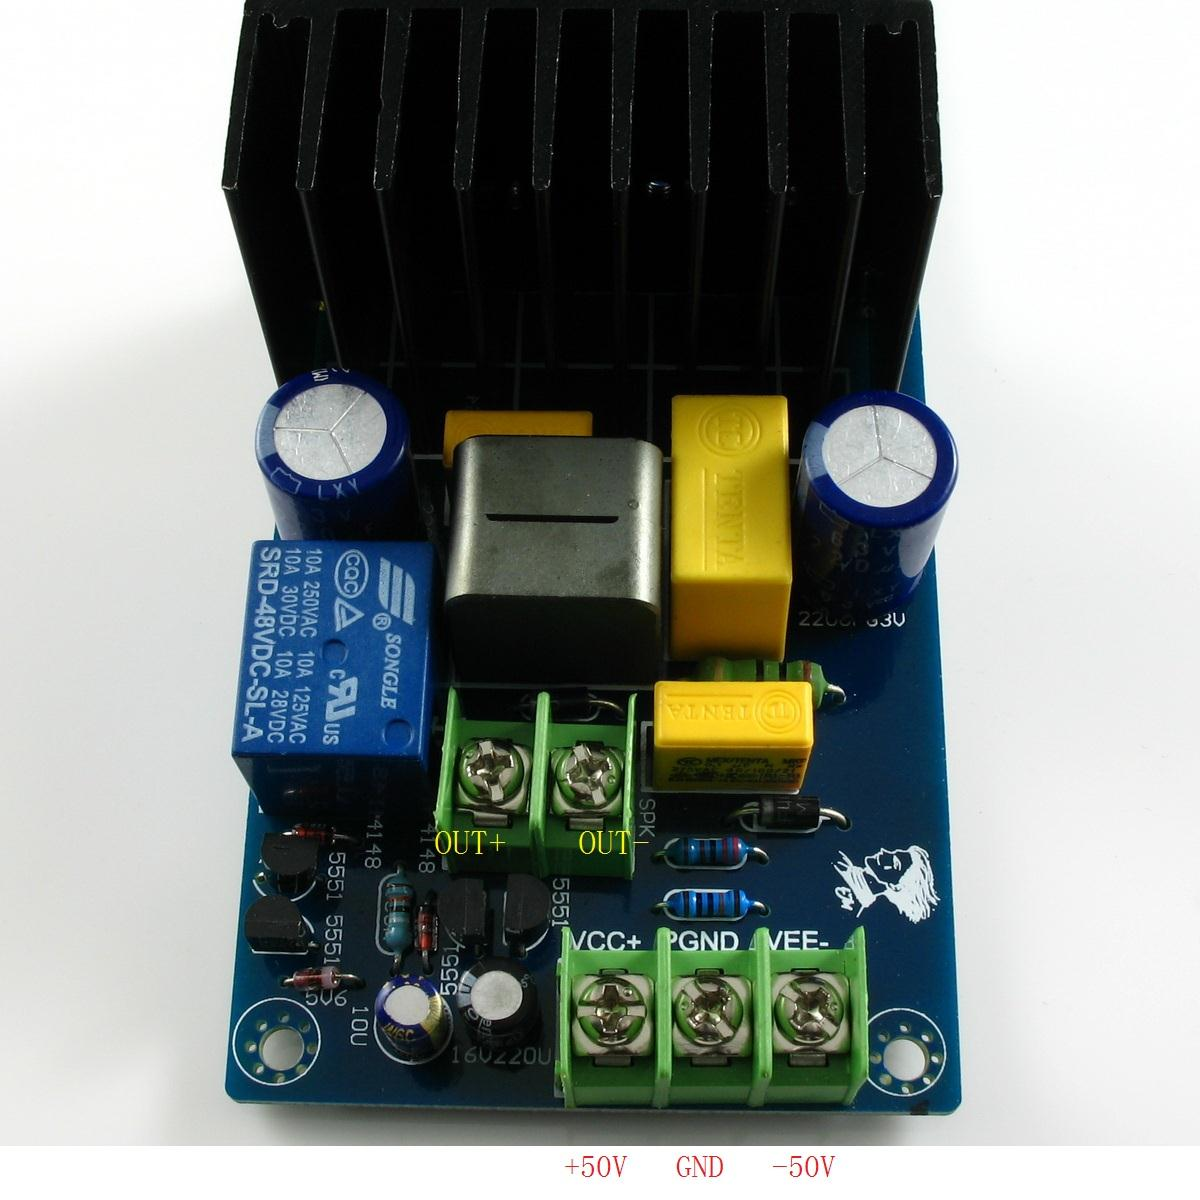 Irs2092 Irfb4019 Class D Power Amplifier Board Relay Protection 300w Kit Stereo Audio Ti Tpa3123 Circuit Ebay